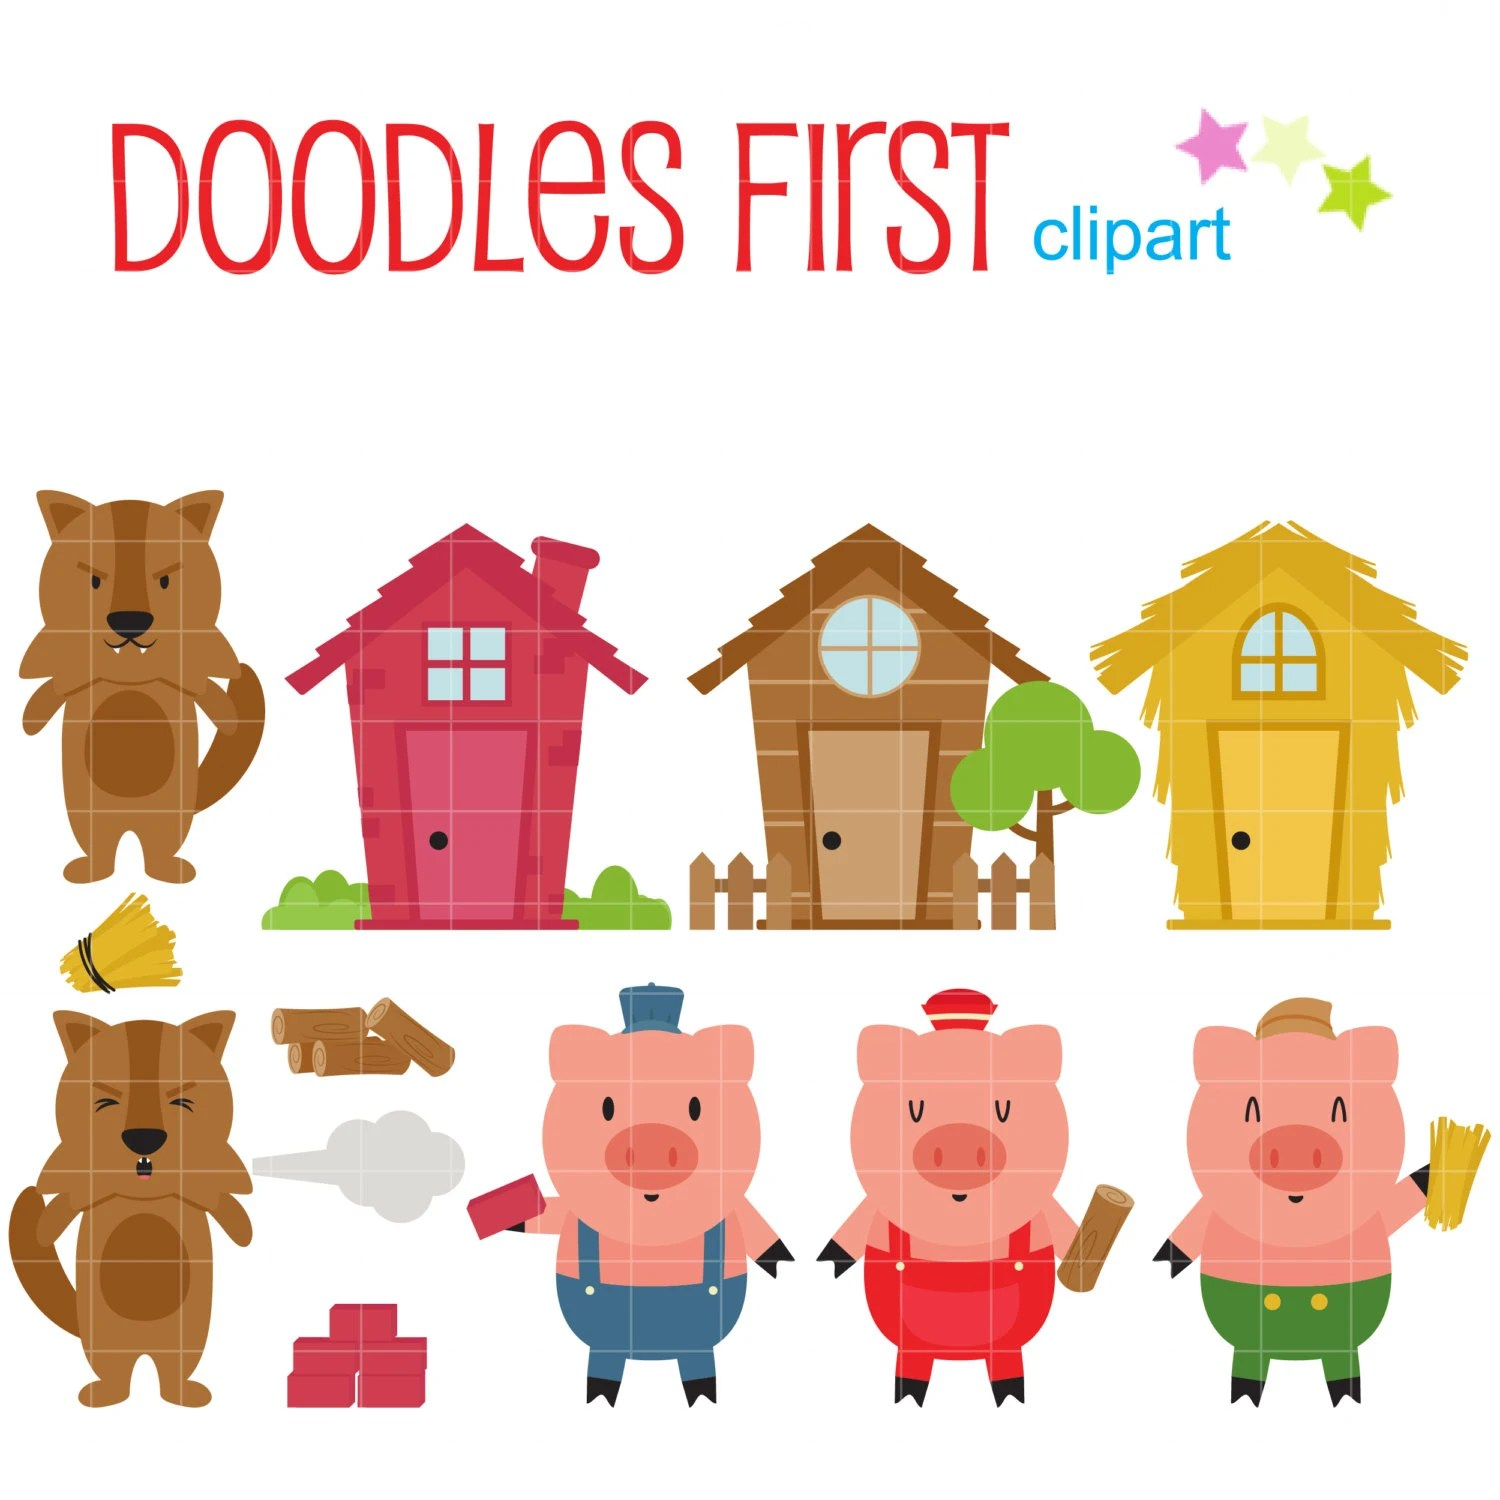 Three Little Pigs Clip Art For Scrapbooking Card Making